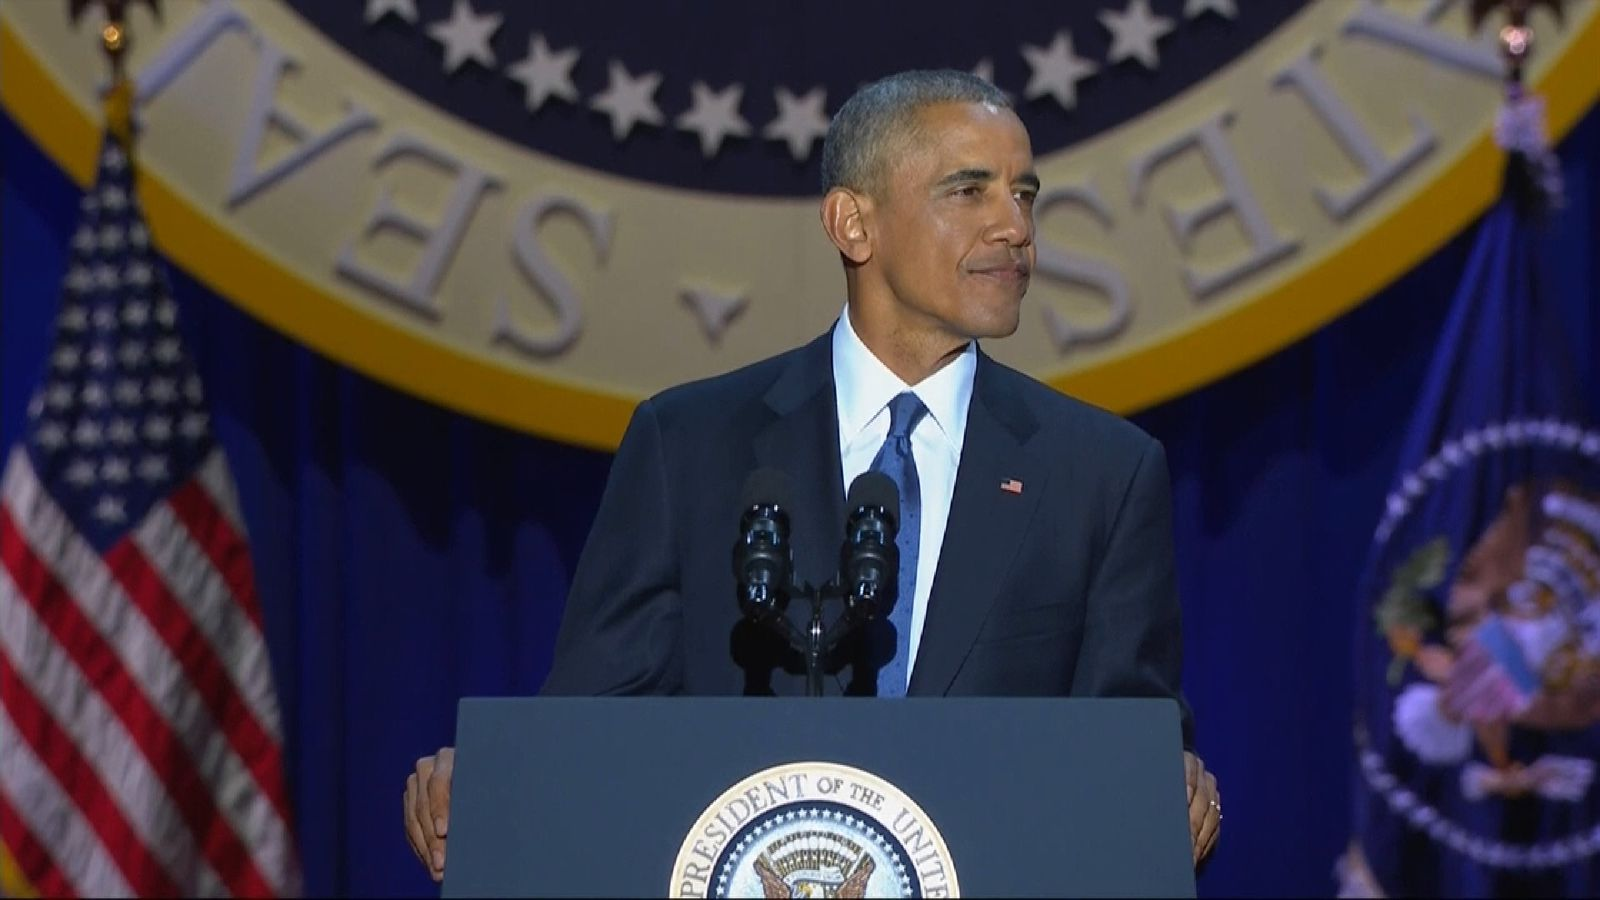 The 44th President says goodbye